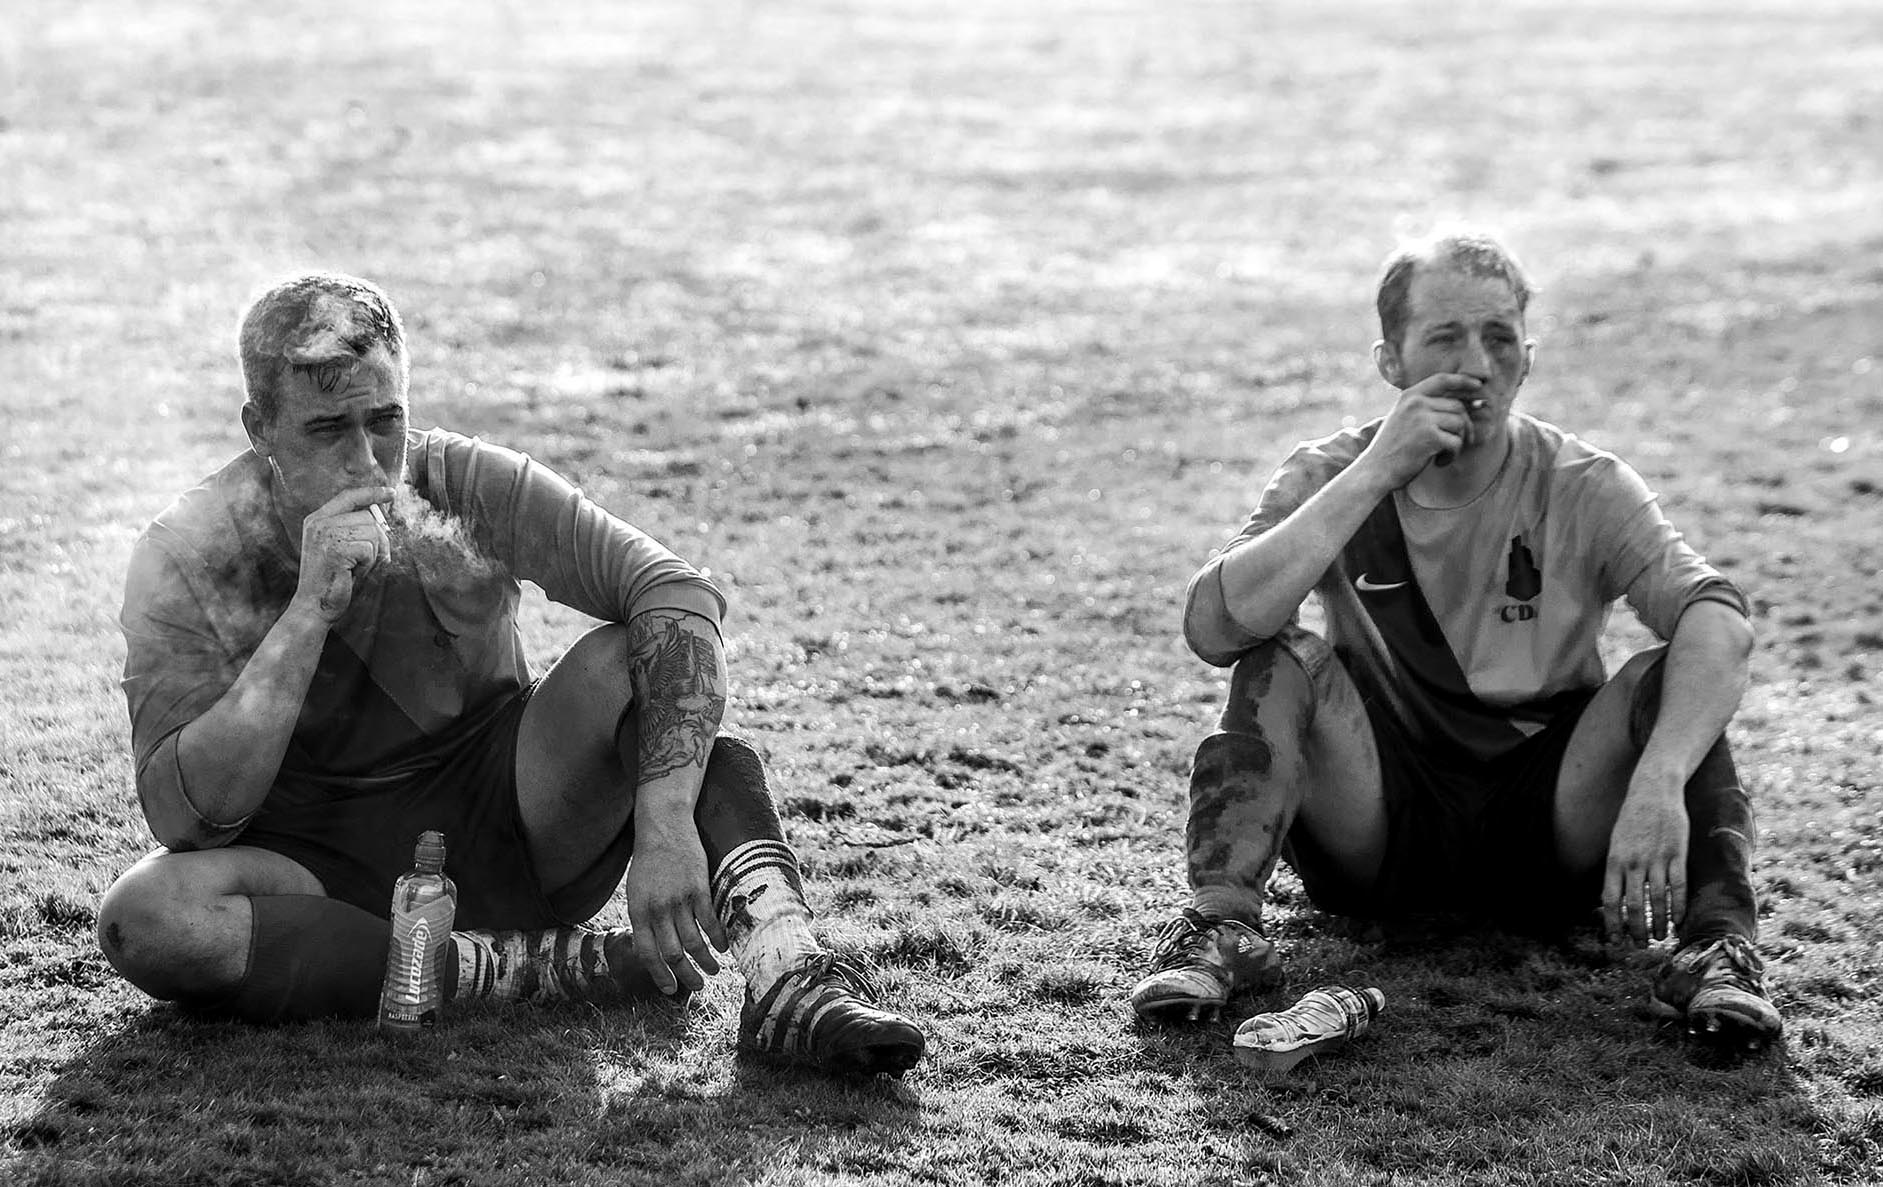 CDA players smoke cigarettes during the half time team talk in their game against Yacht Tavern in Southampton.Photo by Eddie Keogh  11 December 2016